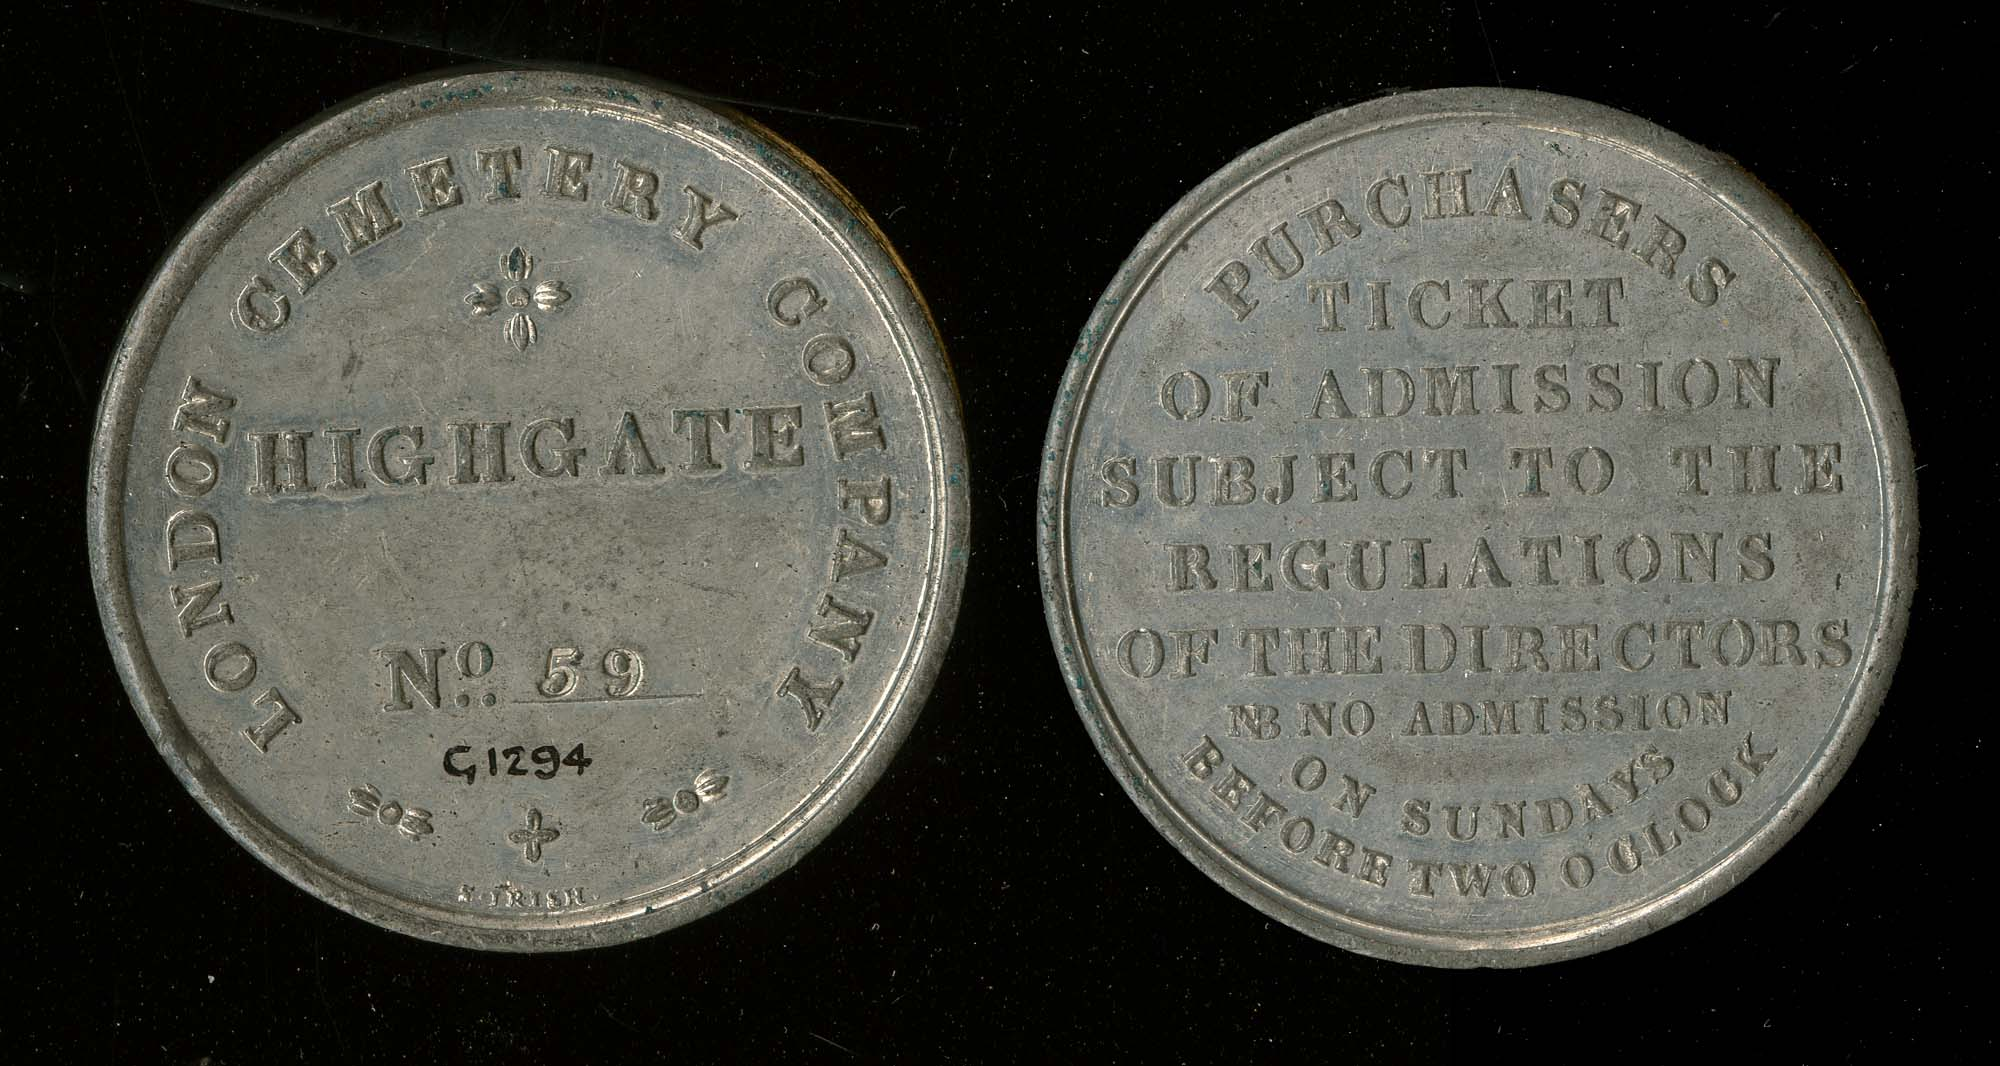 a photo of two sides of a round coin-like admission pass to Highgate Cemetery inscribed PURCHASERS TICKET OF ADMISSION SUBJECT TO THE REGULATIONS OF THE DIRECTORS NB NO ADMISSION ON SUNDAYS BEFORE TWO O'CLOCK.